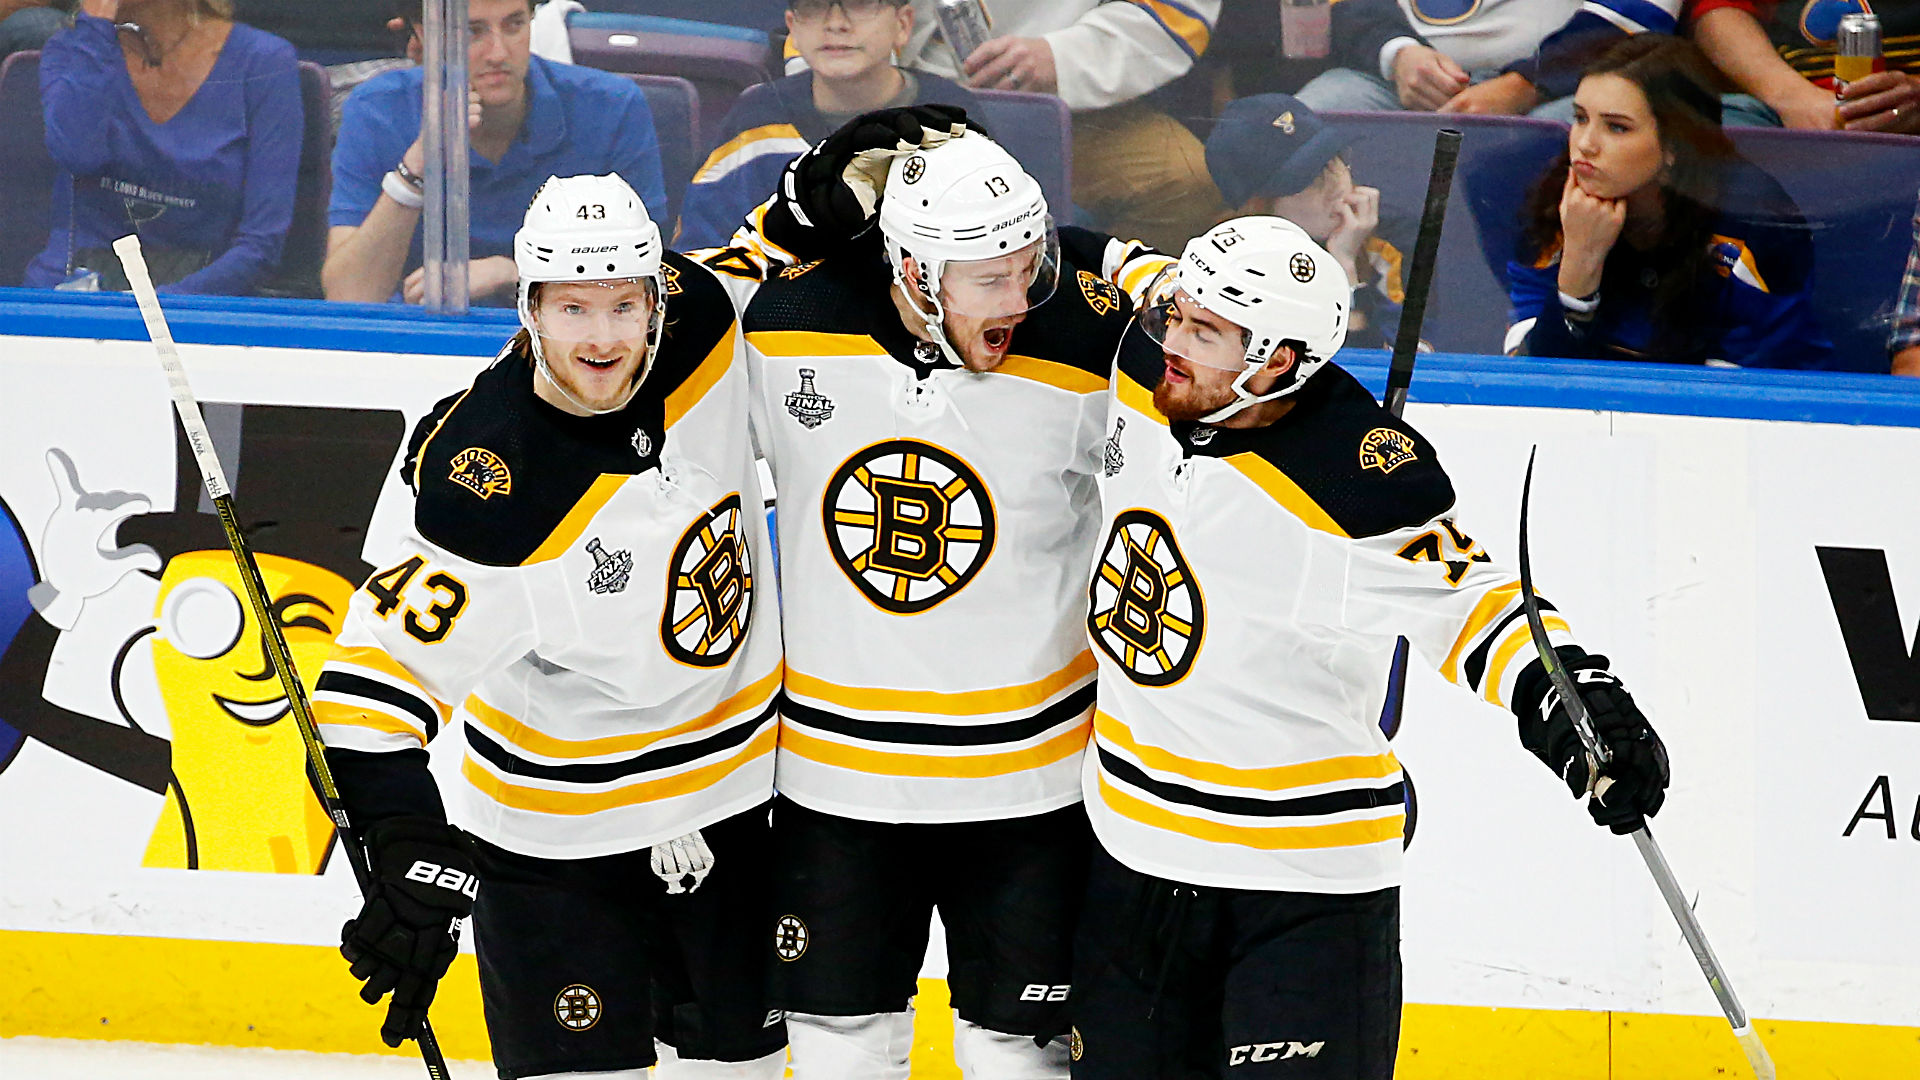 what's the score of the bruins game   gamewithplay.com